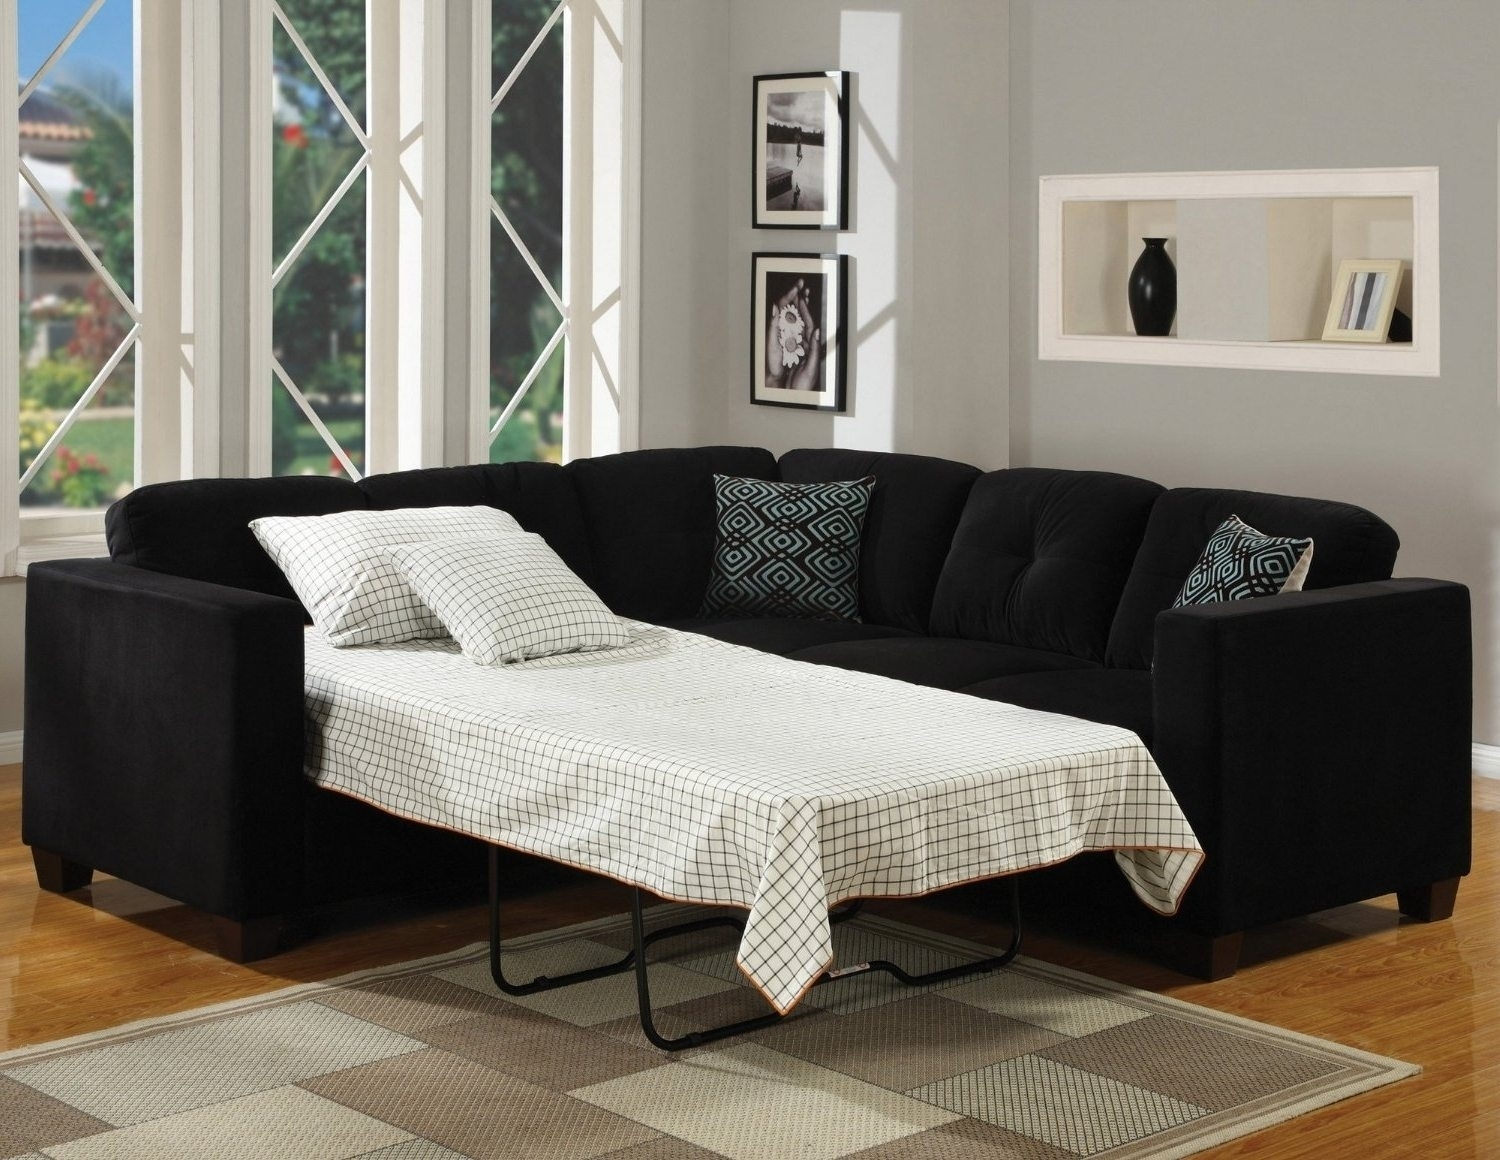 Furniture : Sectional Too Large For Room L Shaped Couch Leather With 100X100 Sectional Sofas (View 9 of 10)